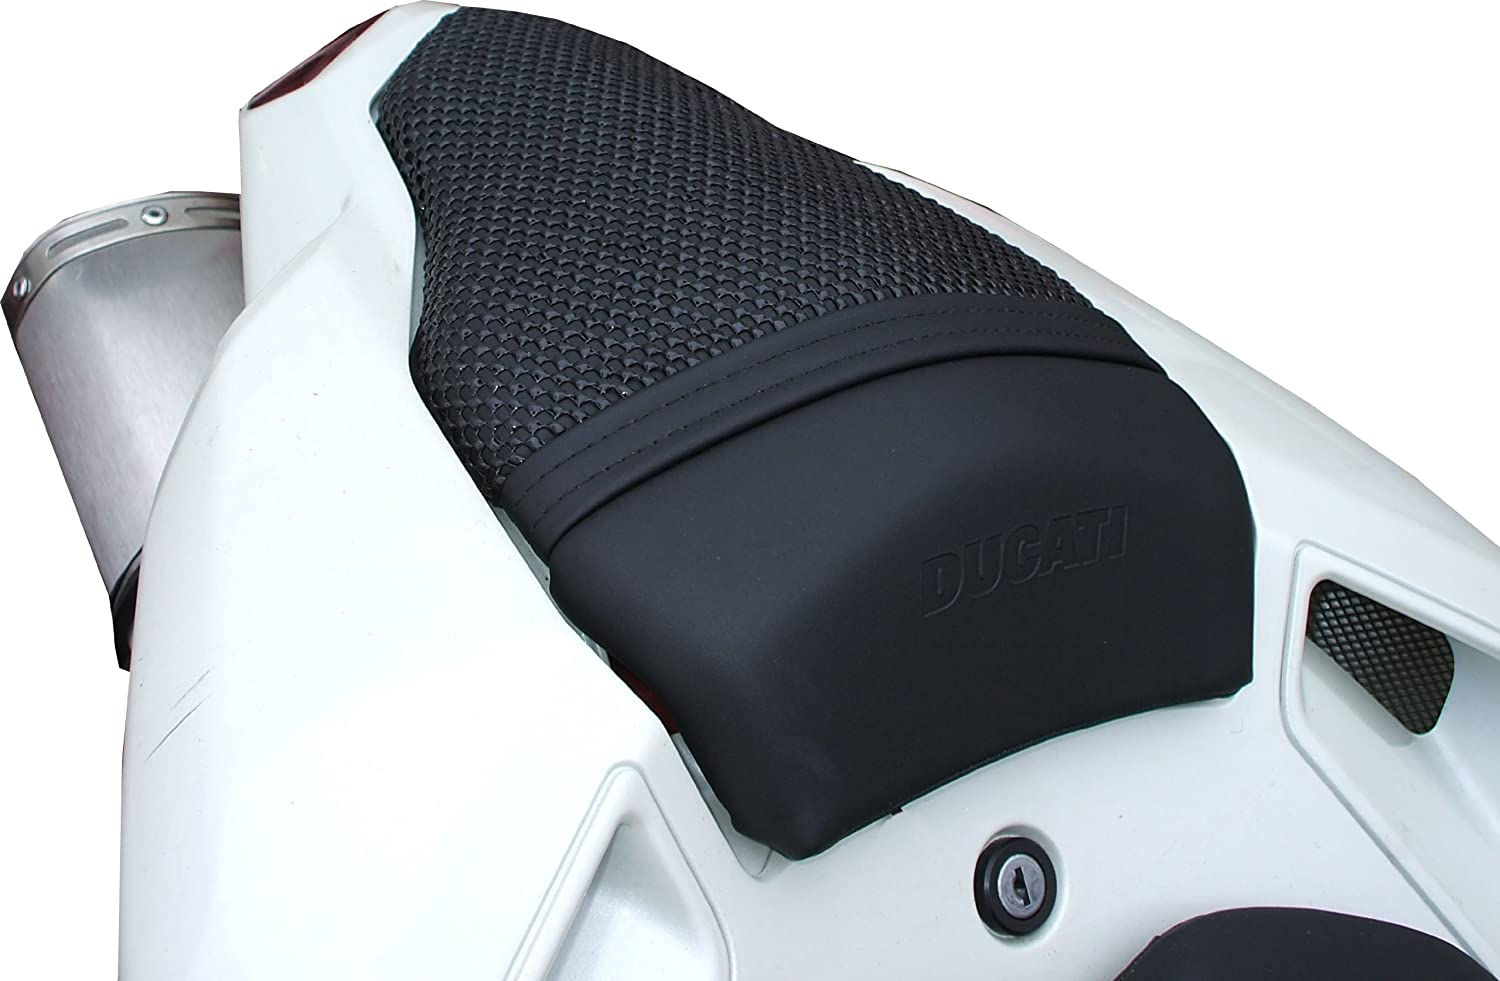 2005-2013 Motorbikes, Accessories & Parts Triboseat Anti Slip Motorcycle Passenger Seat Cover Black Accessory Compatible With BMW R1200RT